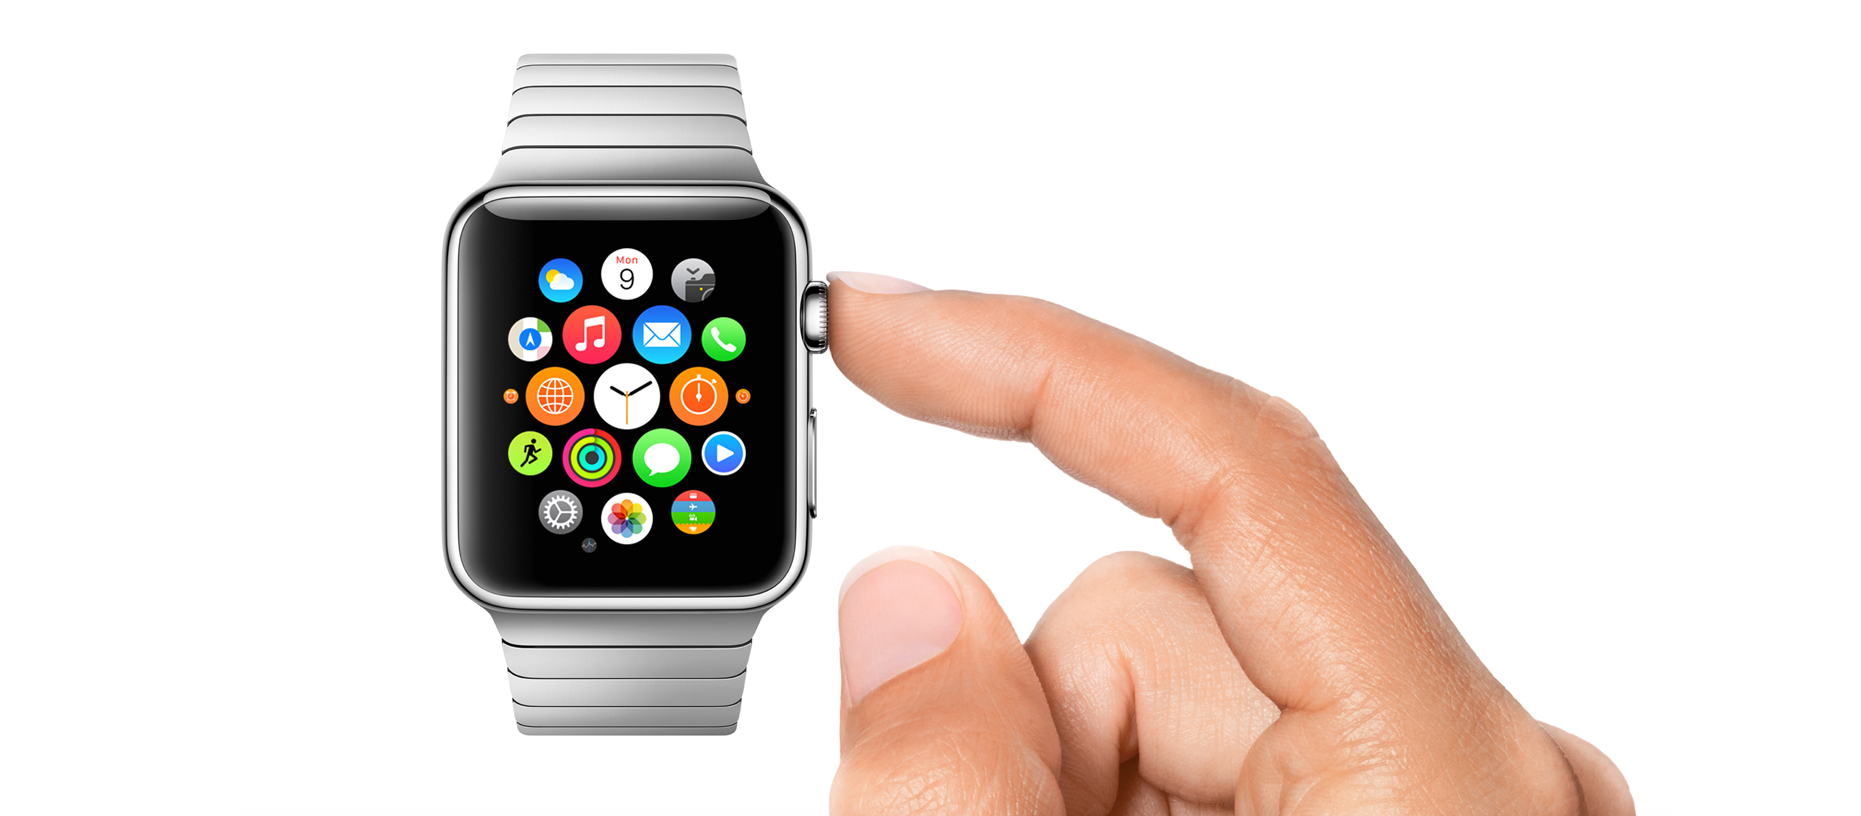 Lunar New Year holidays caused the initial delay in producing Apple Watch